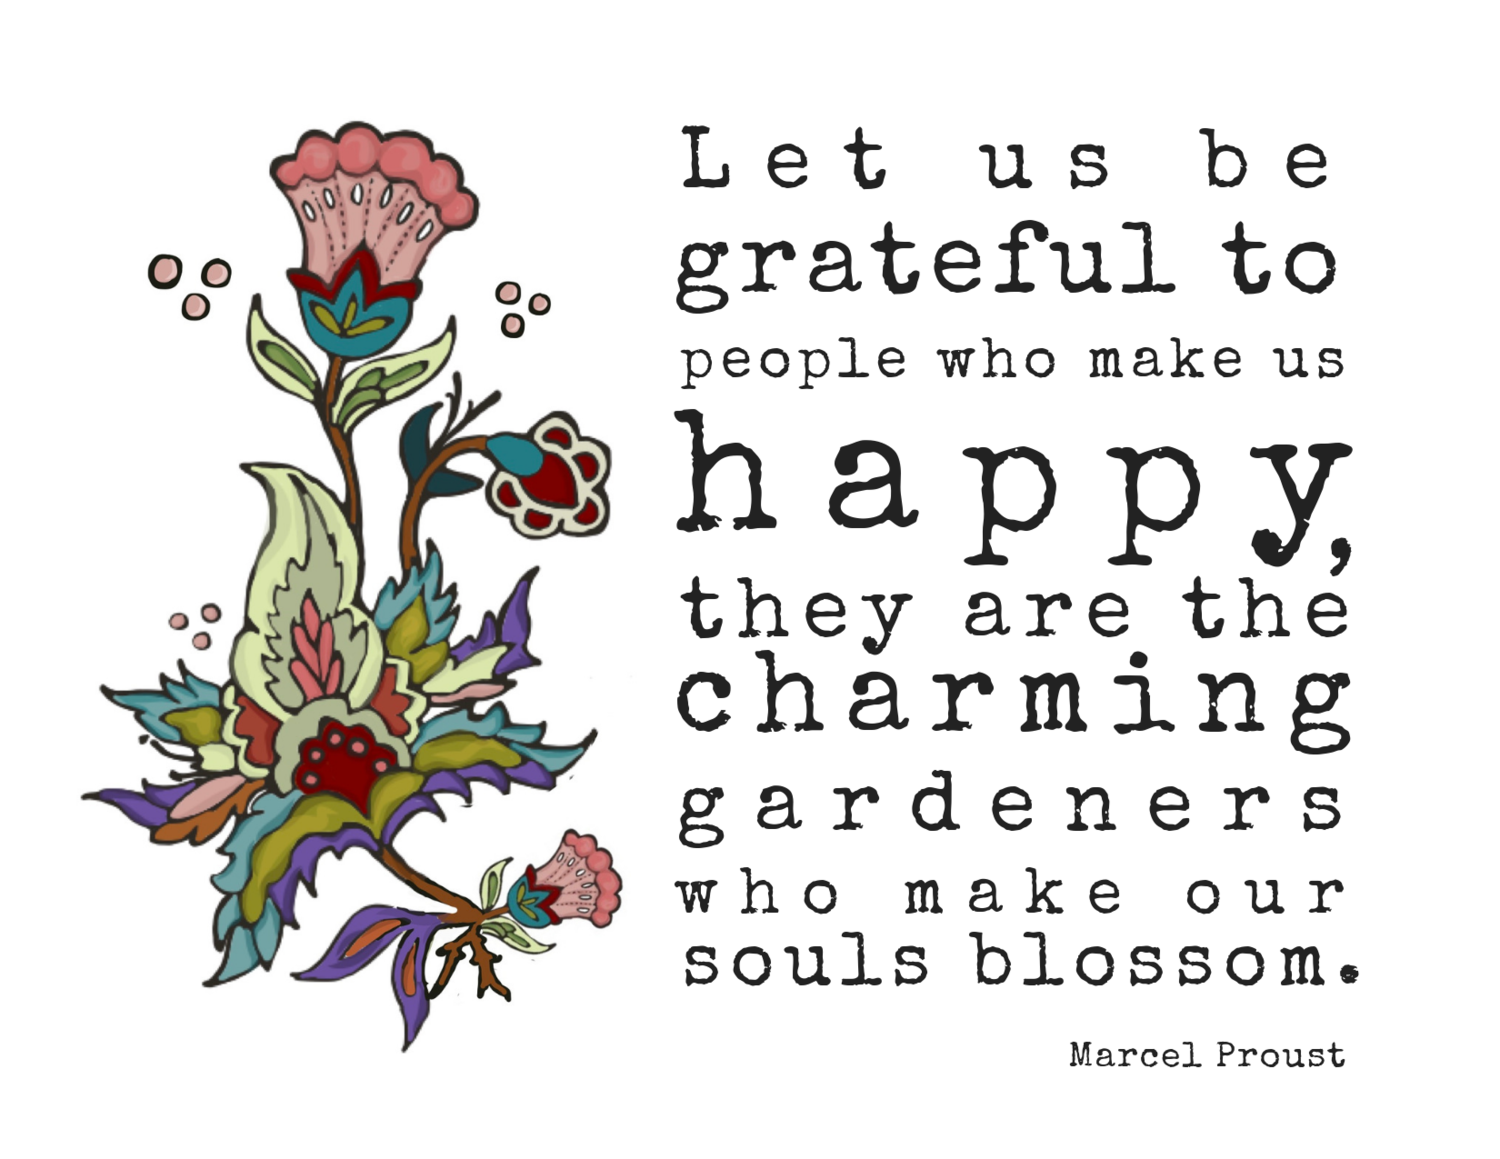 Charming Gardeners - Marcel Proust Quote Card — Newfolk&Cabin